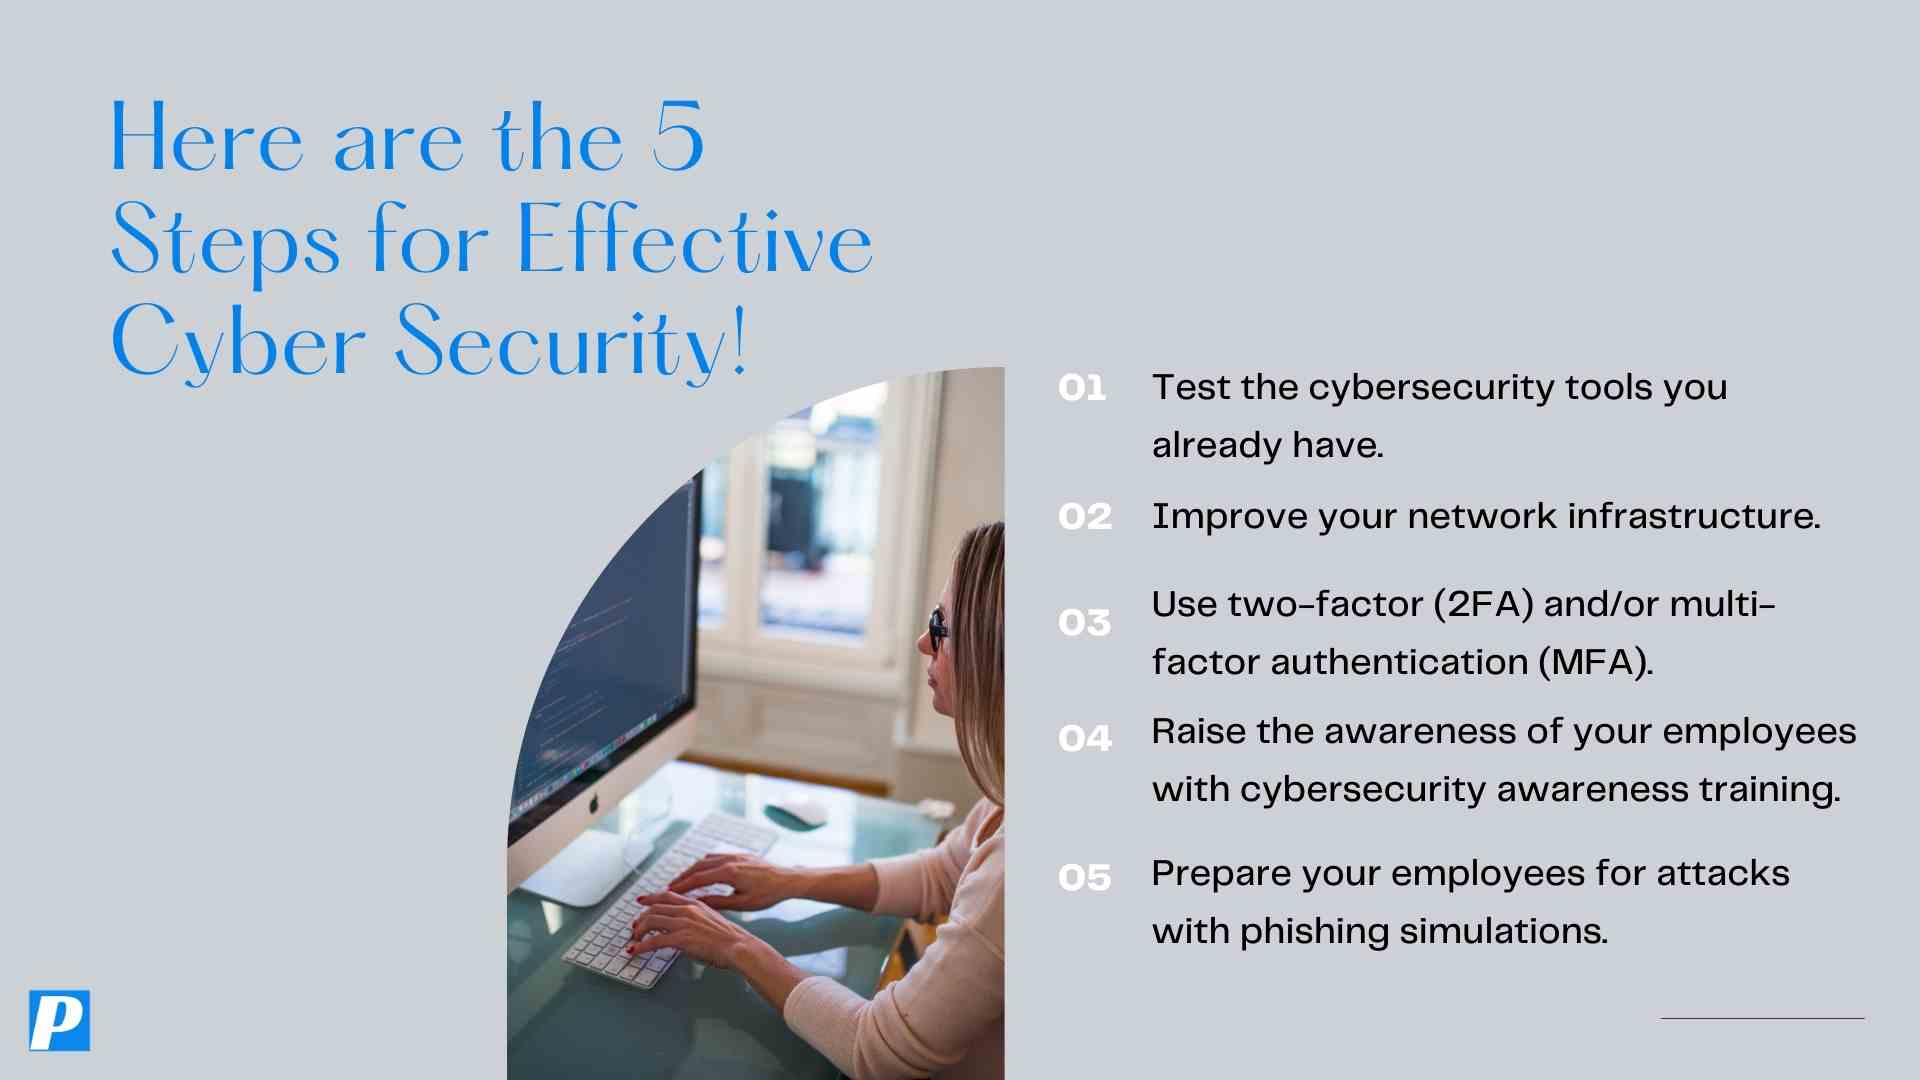 5 Steps for Effective Cybersecurity